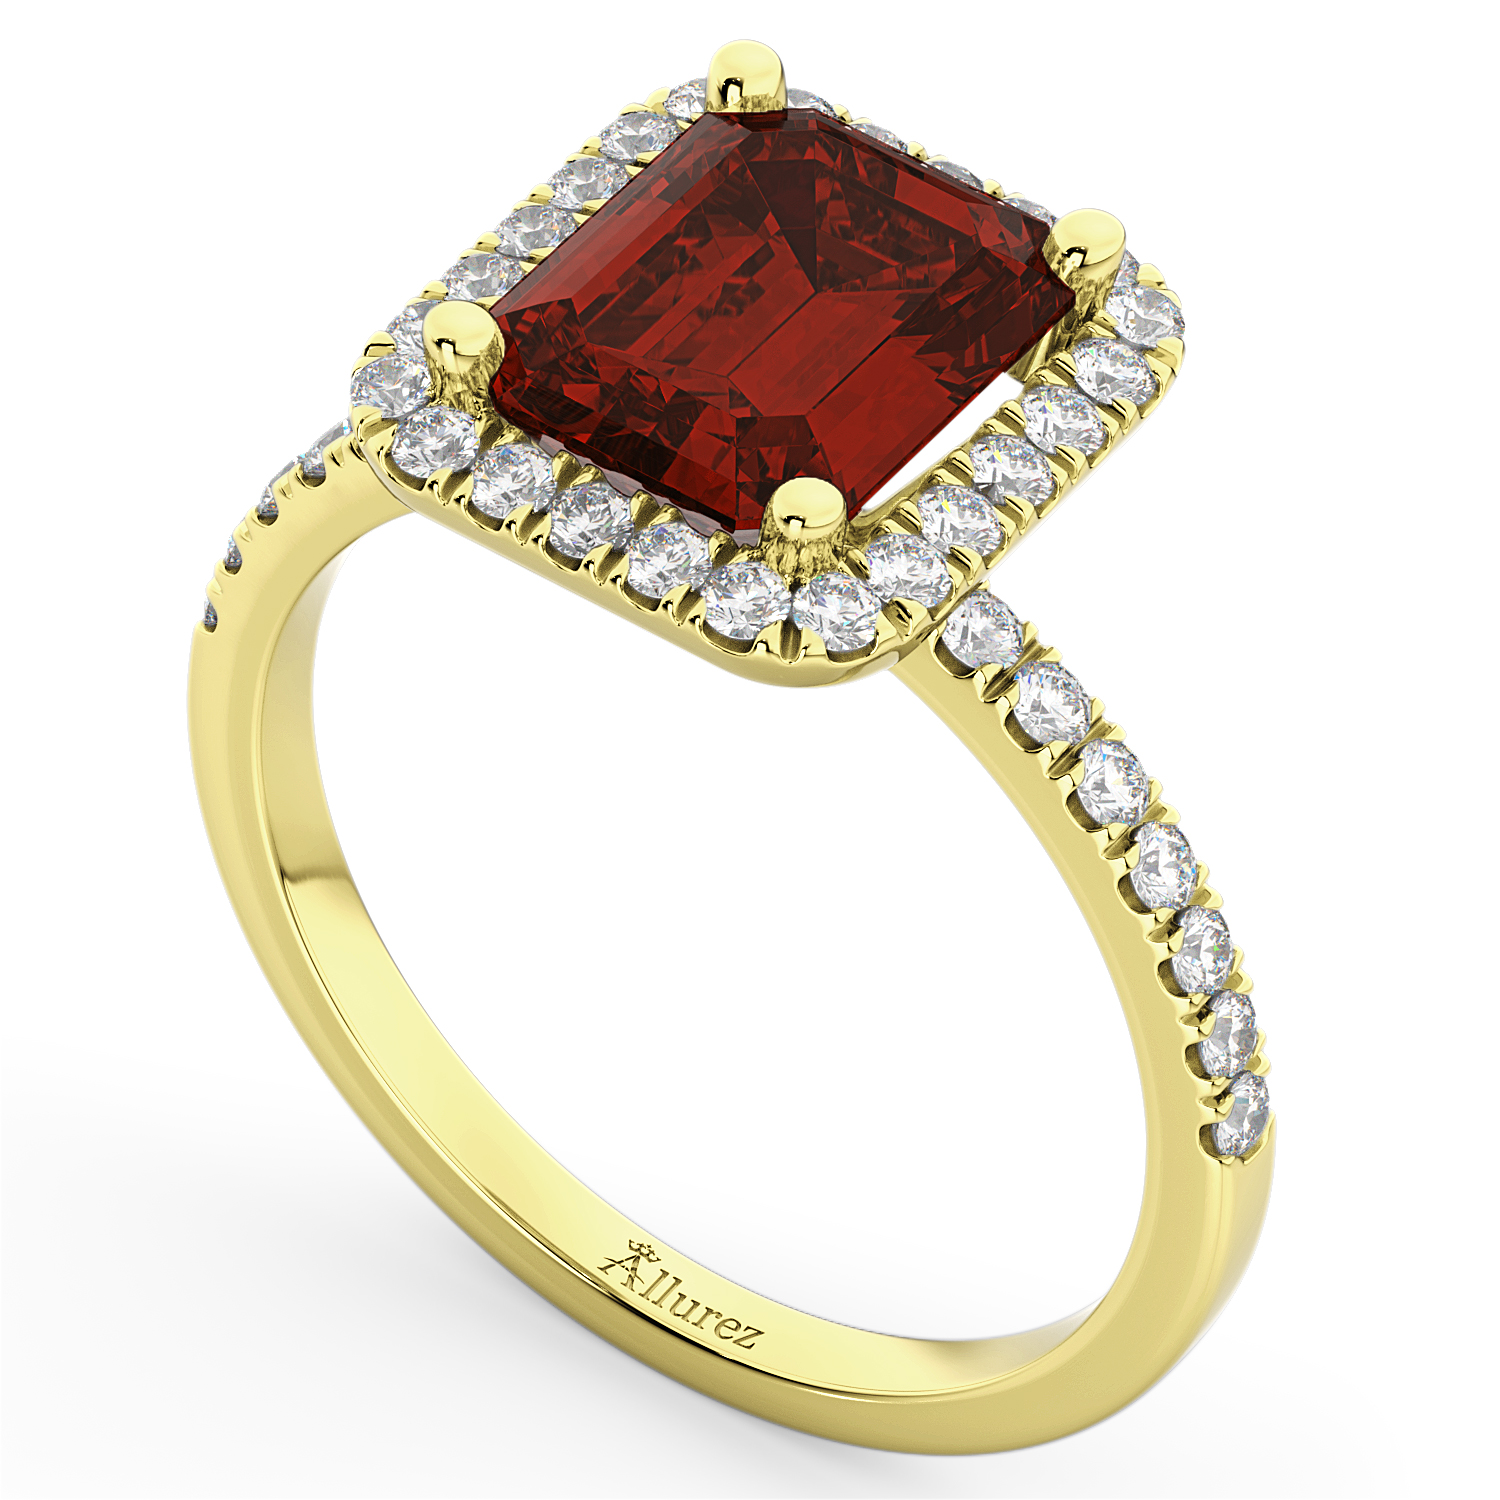 emerald cut garnet engagement ring 18k yellow gold